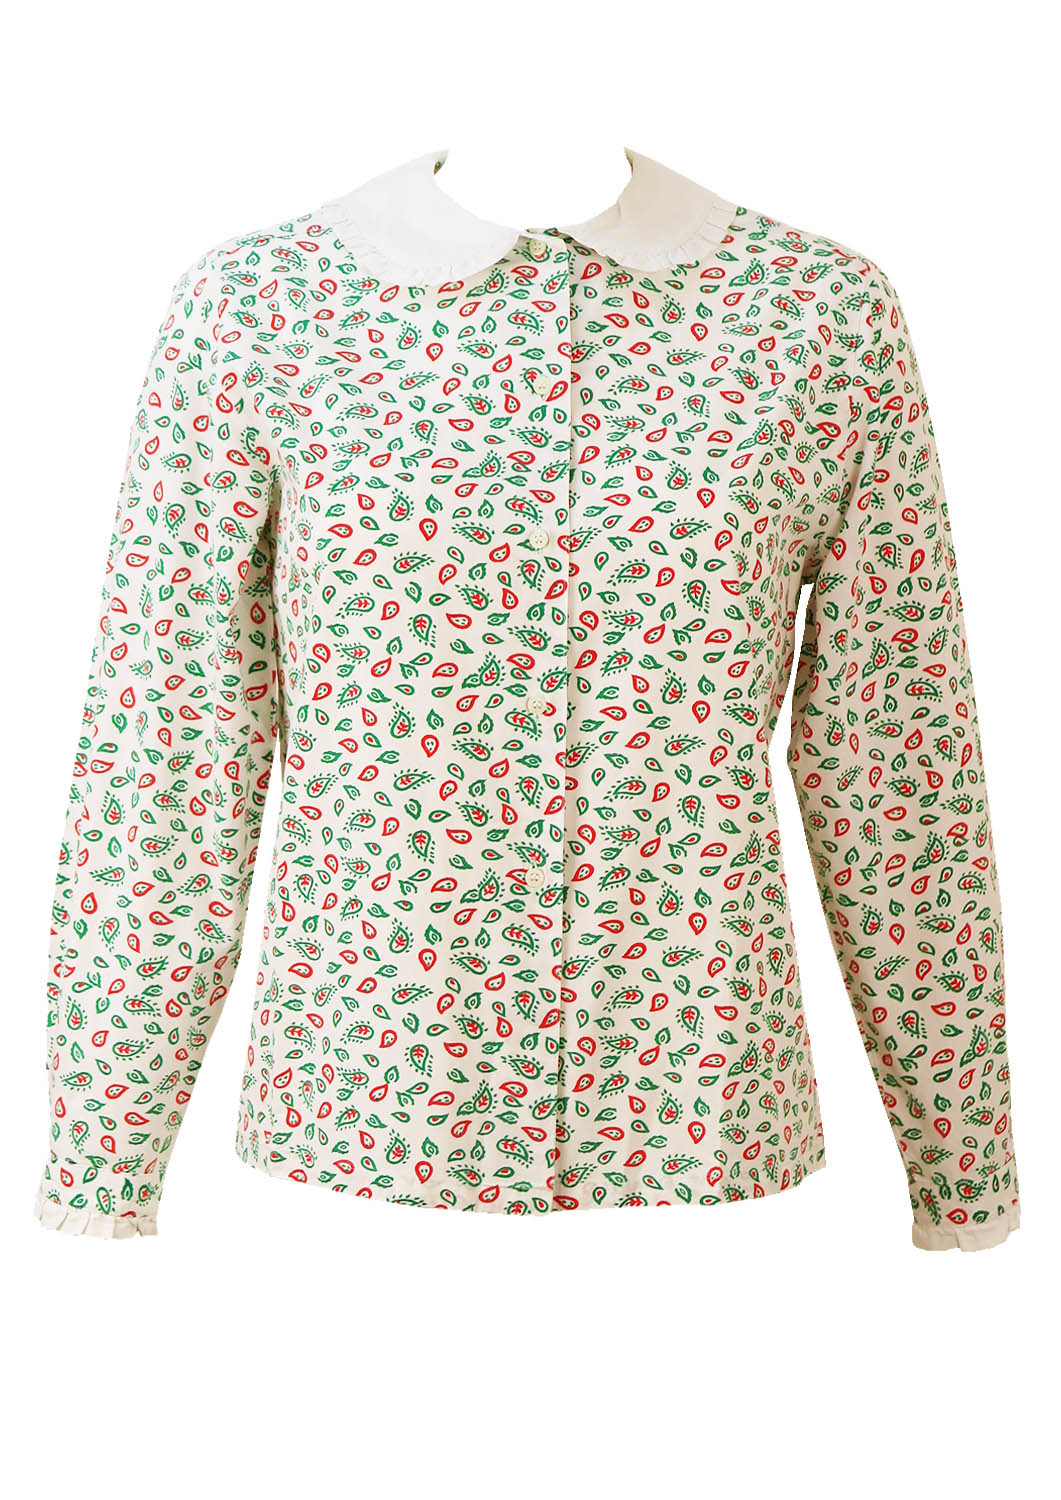 White blouse with green red paisley pattern peter pan for Peter pan shirt pattern